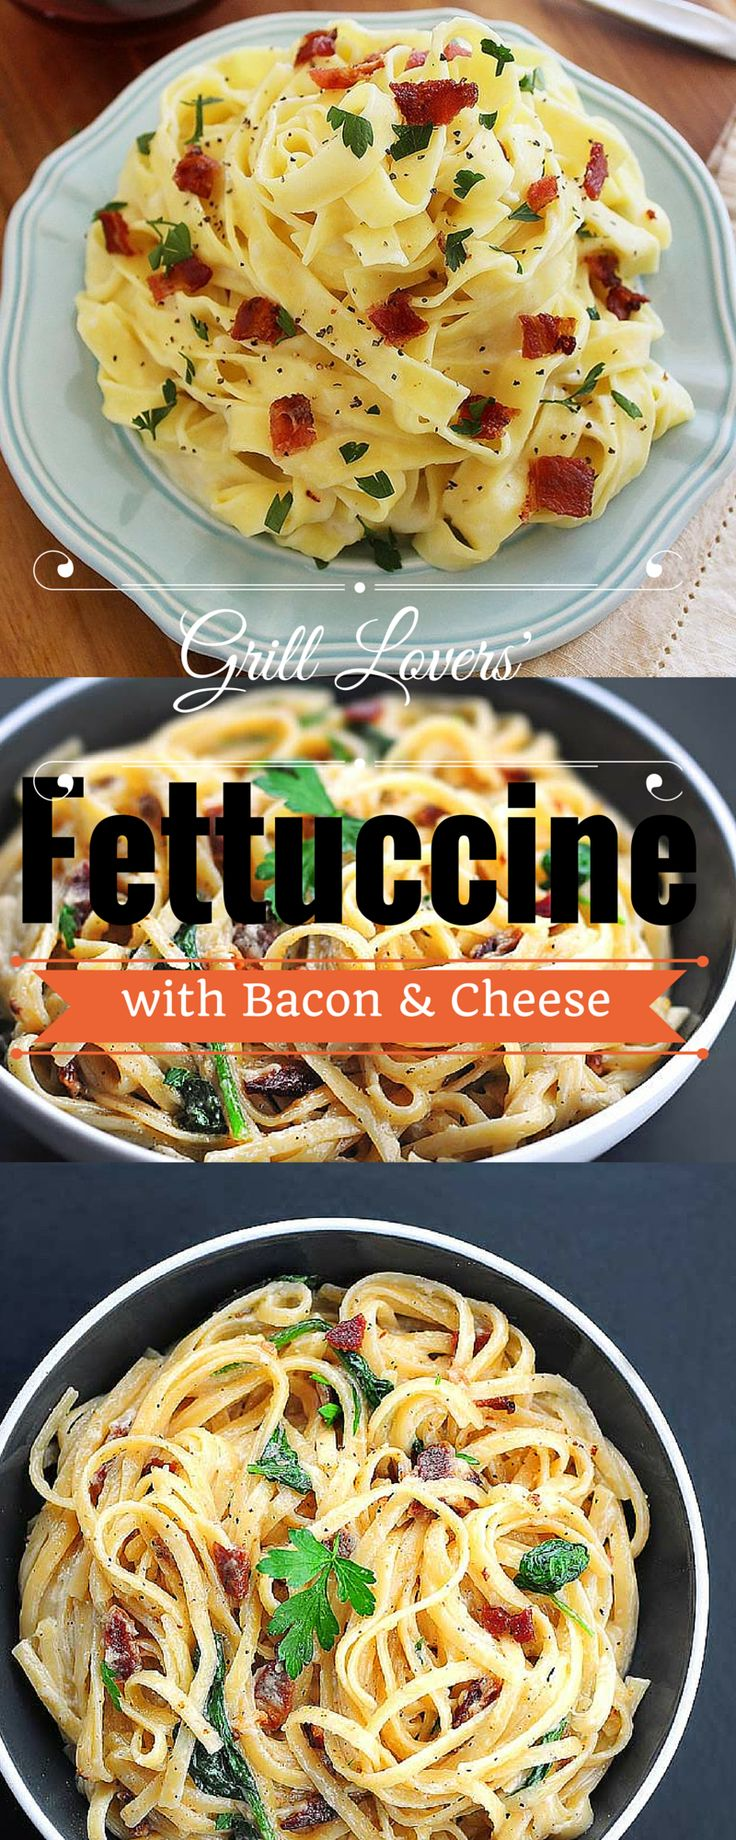 Grill Lovers' Amazing Fettuccine with Bacon and Cheese Recipe #recipes #foodporn #foodie